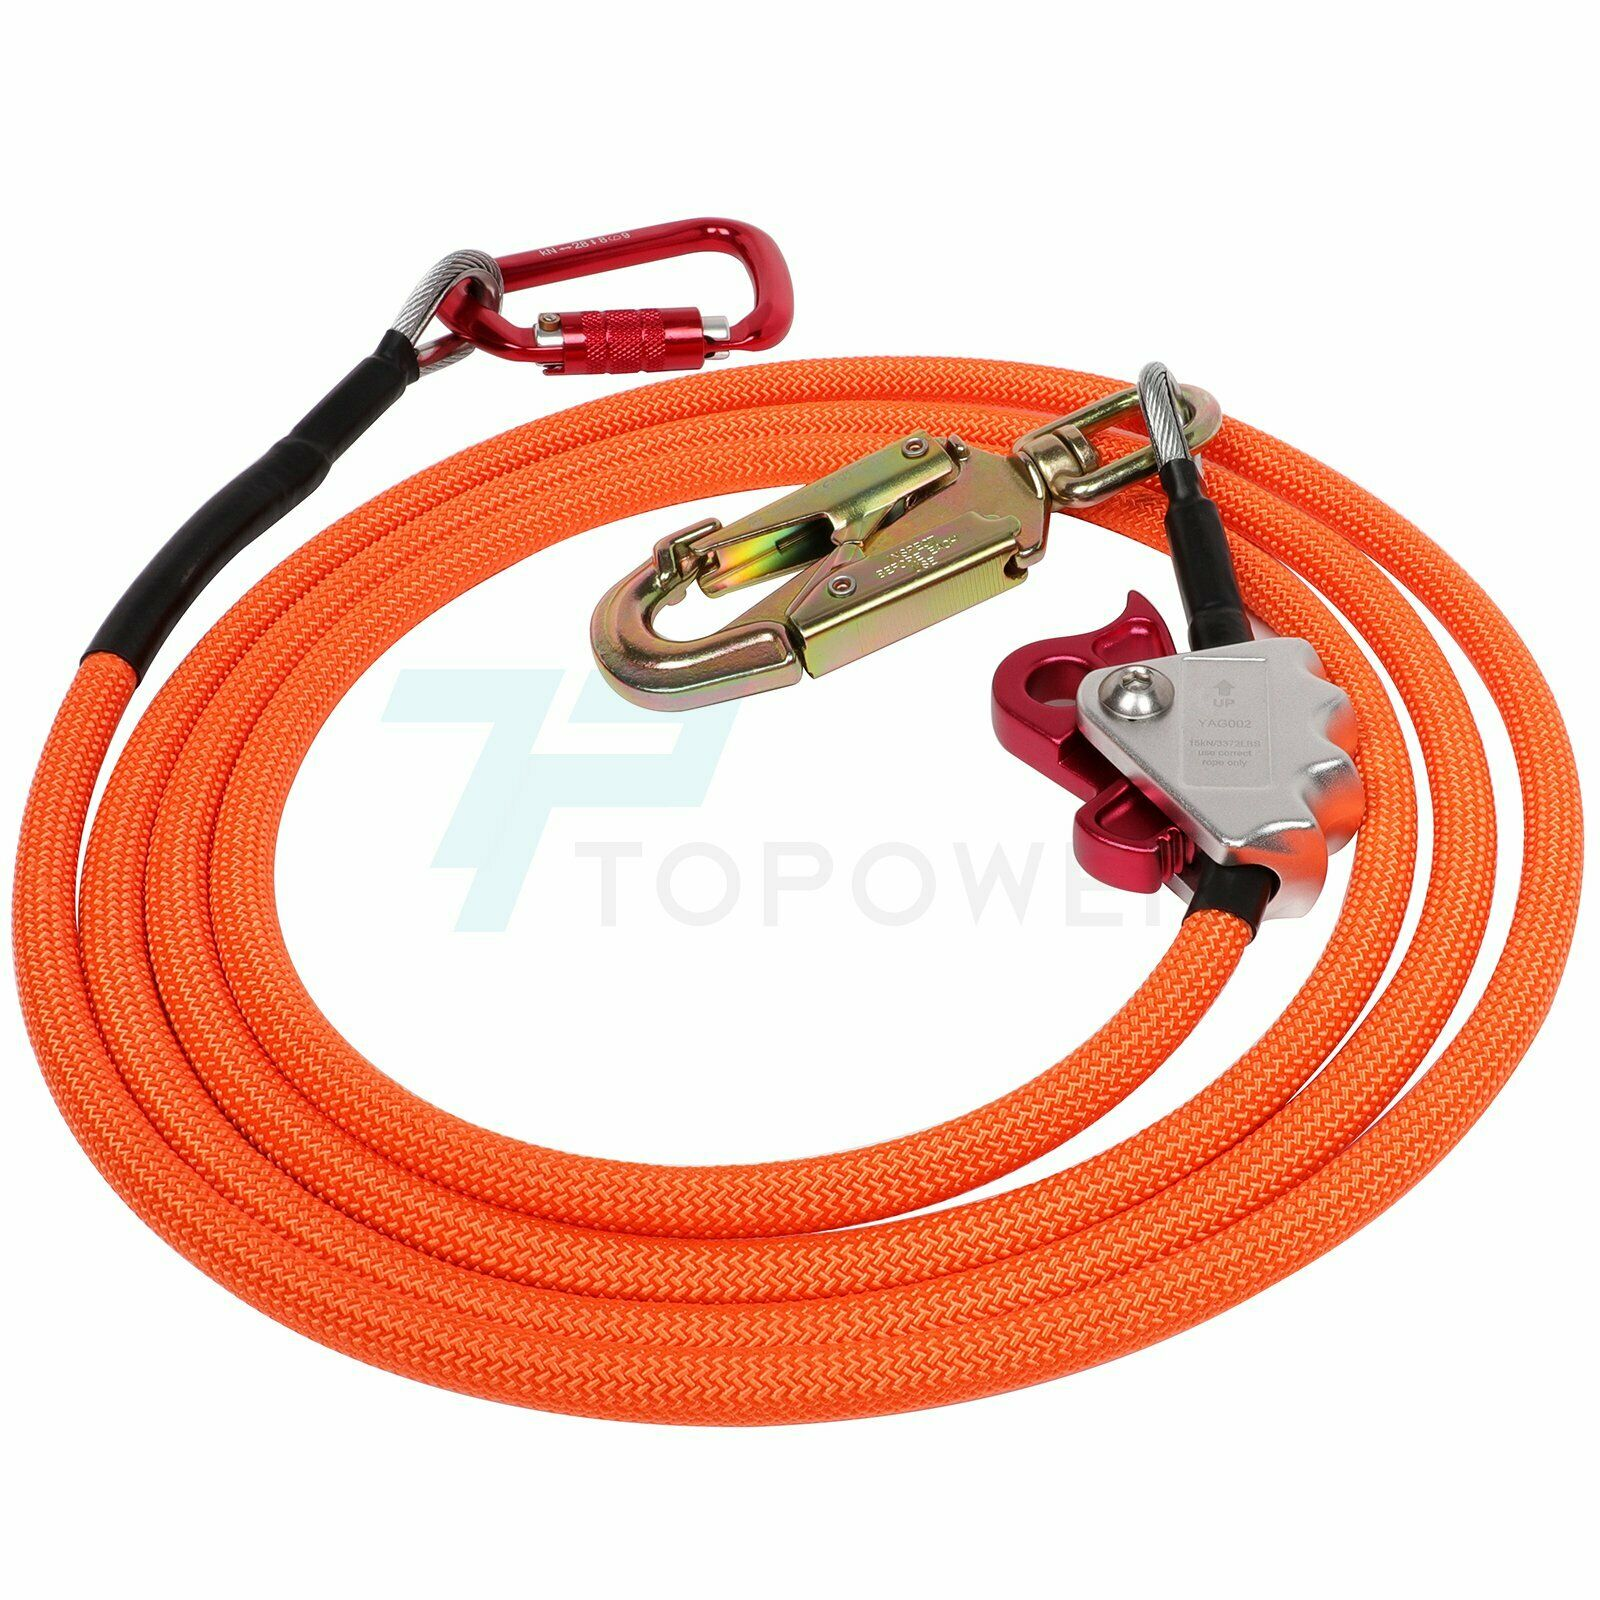 Cut Resistant 4YANG Steel Wire Core Flip Line Kits Low Stretch Flipline with Triple Lock Carabiner Adjuster for Fall Protection 1//2x8ft Adjustable Lanyard Tree Climbers Arborist